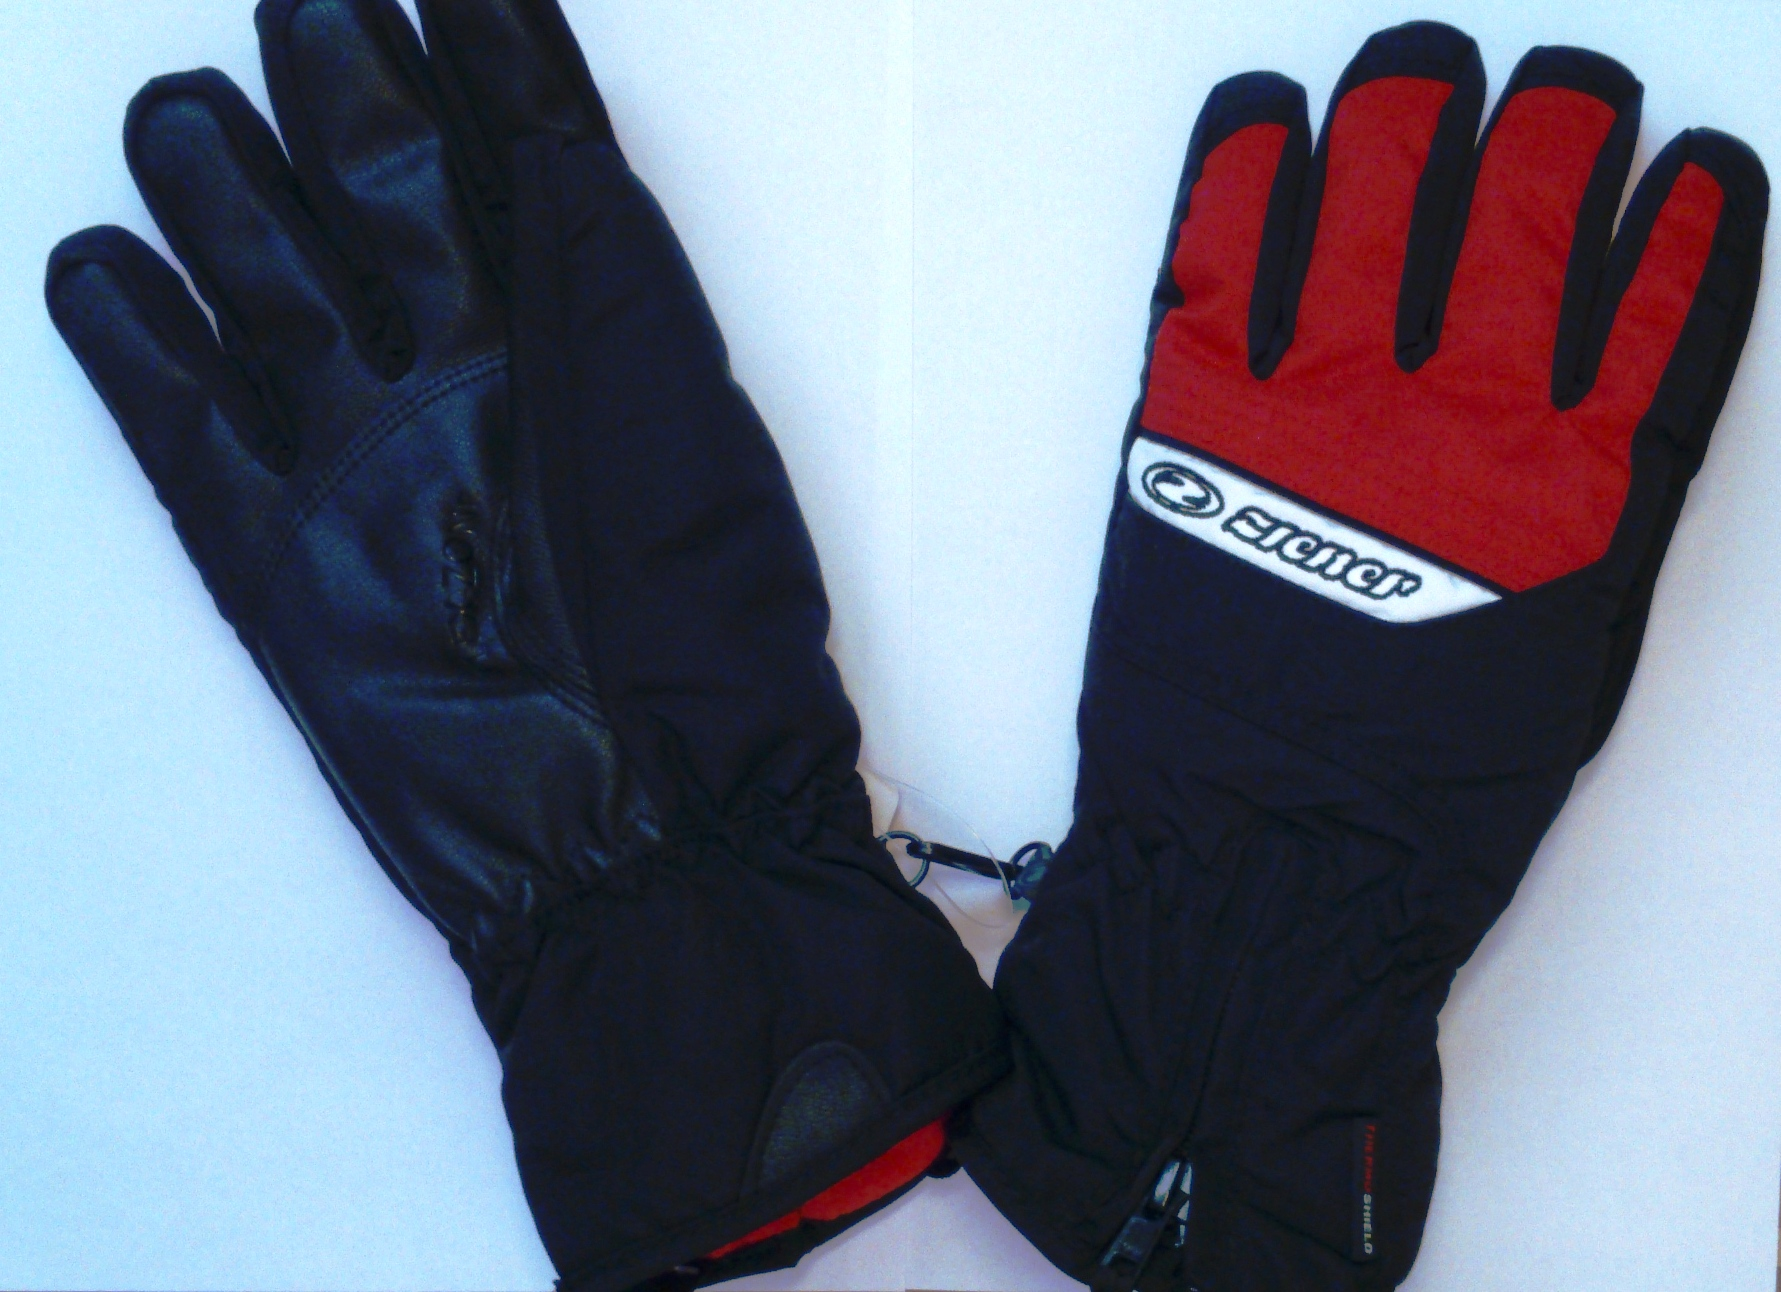 ZIENER GALLUS glove ski alpine, black/red